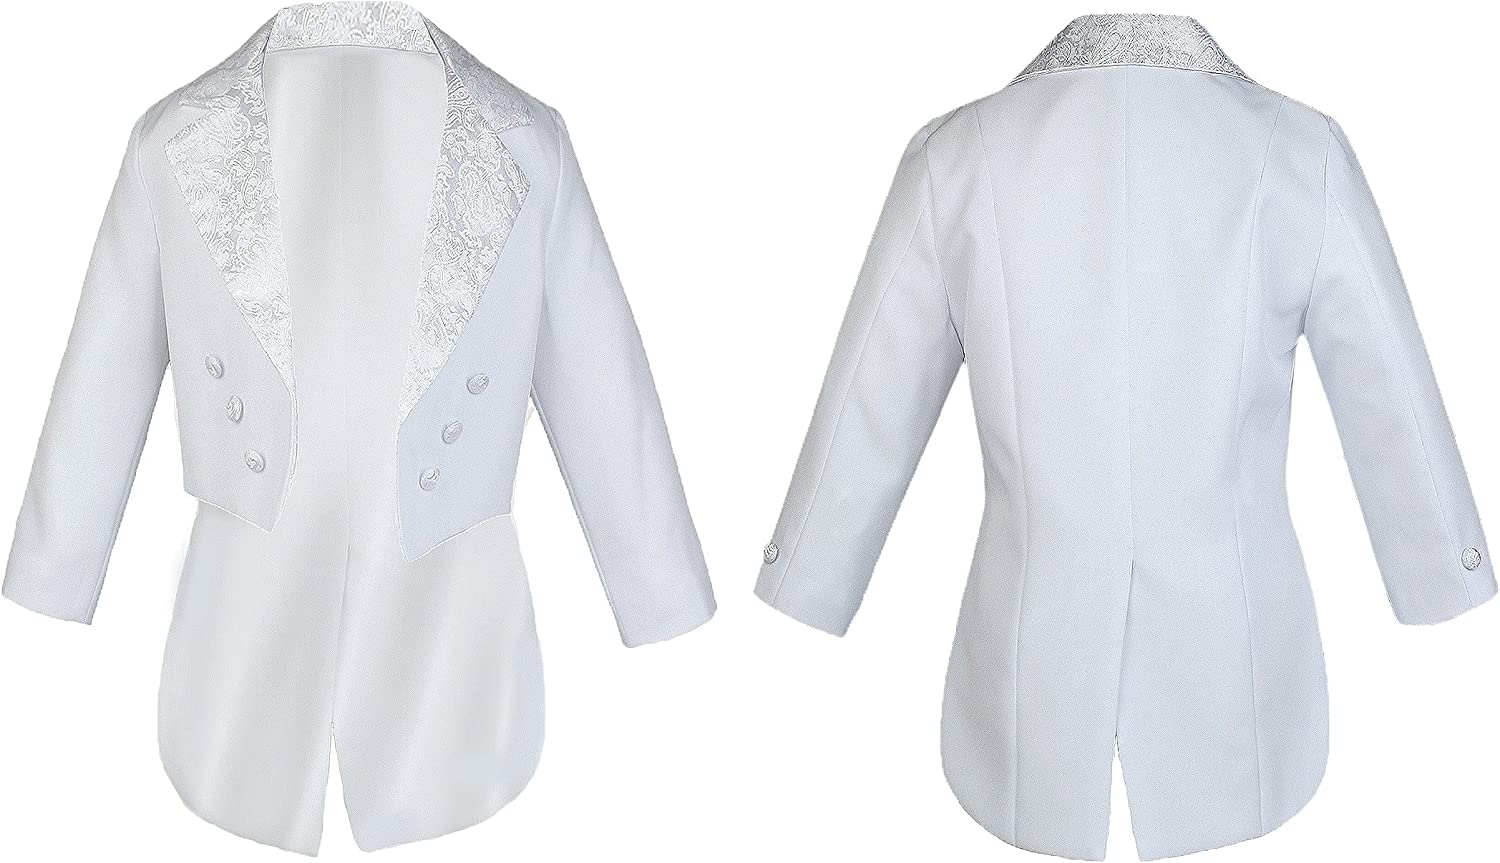 Unotux Baby Boy Kid Christening Baptism White Suit Tail Jacket Virgin Mary Maria Sm-20